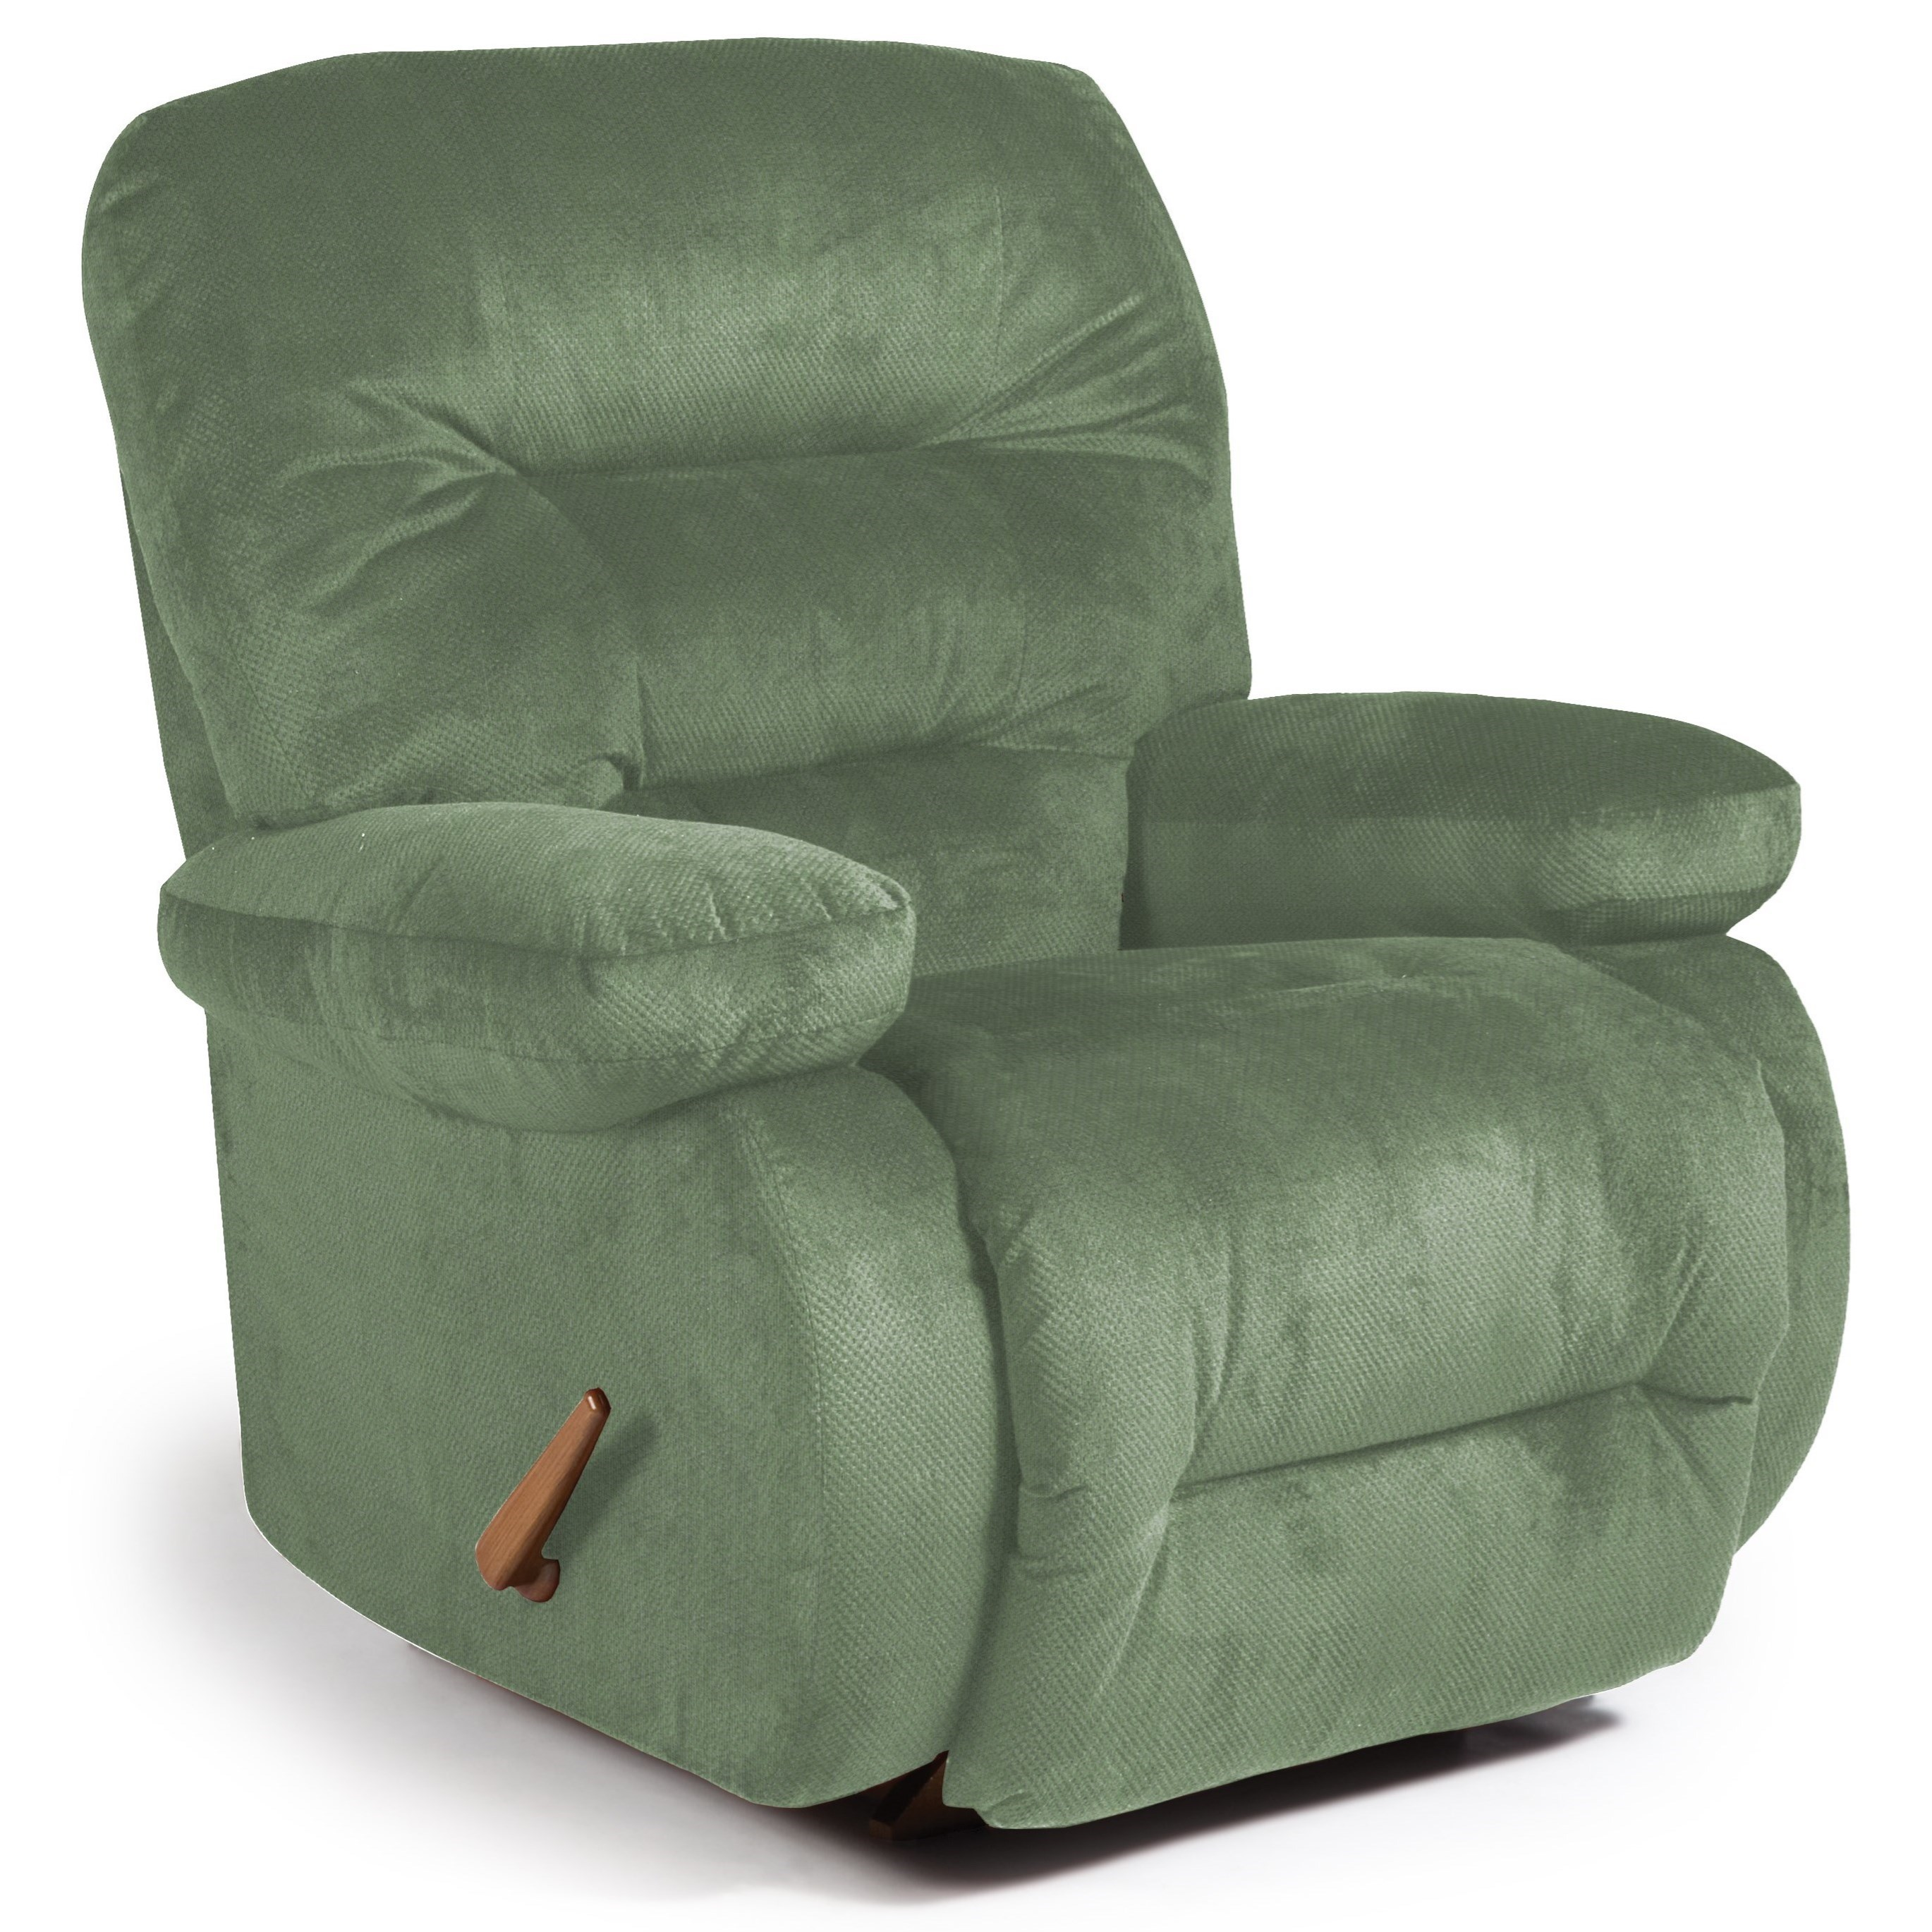 Medium Recliners Maddox Rocker Recliner by Best Home Furnishings at Fashion Furniture